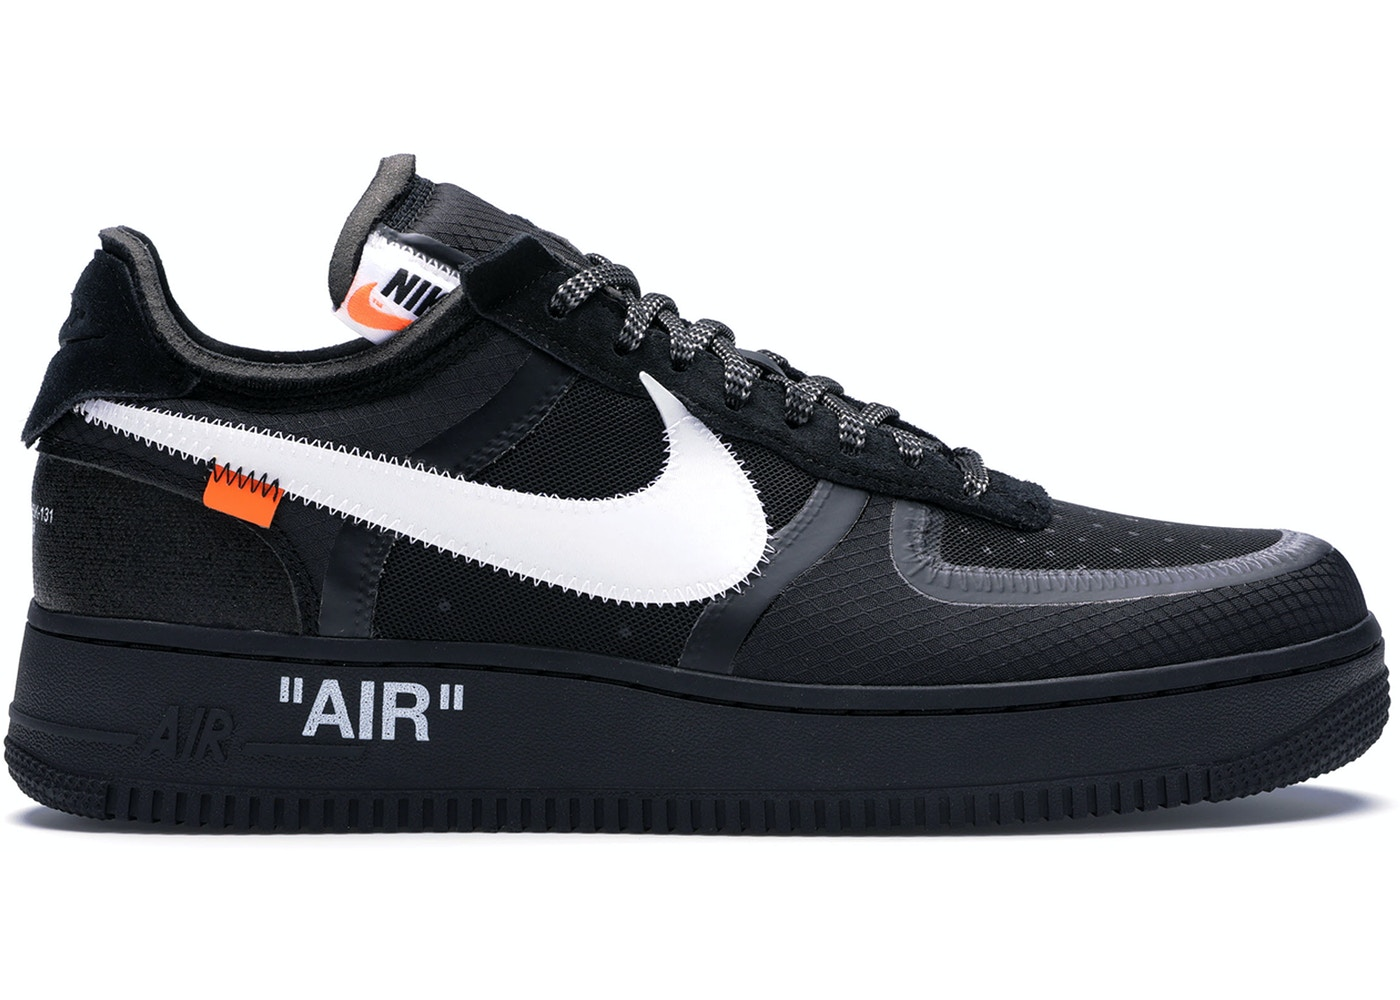 b1f80b3867987 Air Force 1 Low Off-White Black White - AO4606-001